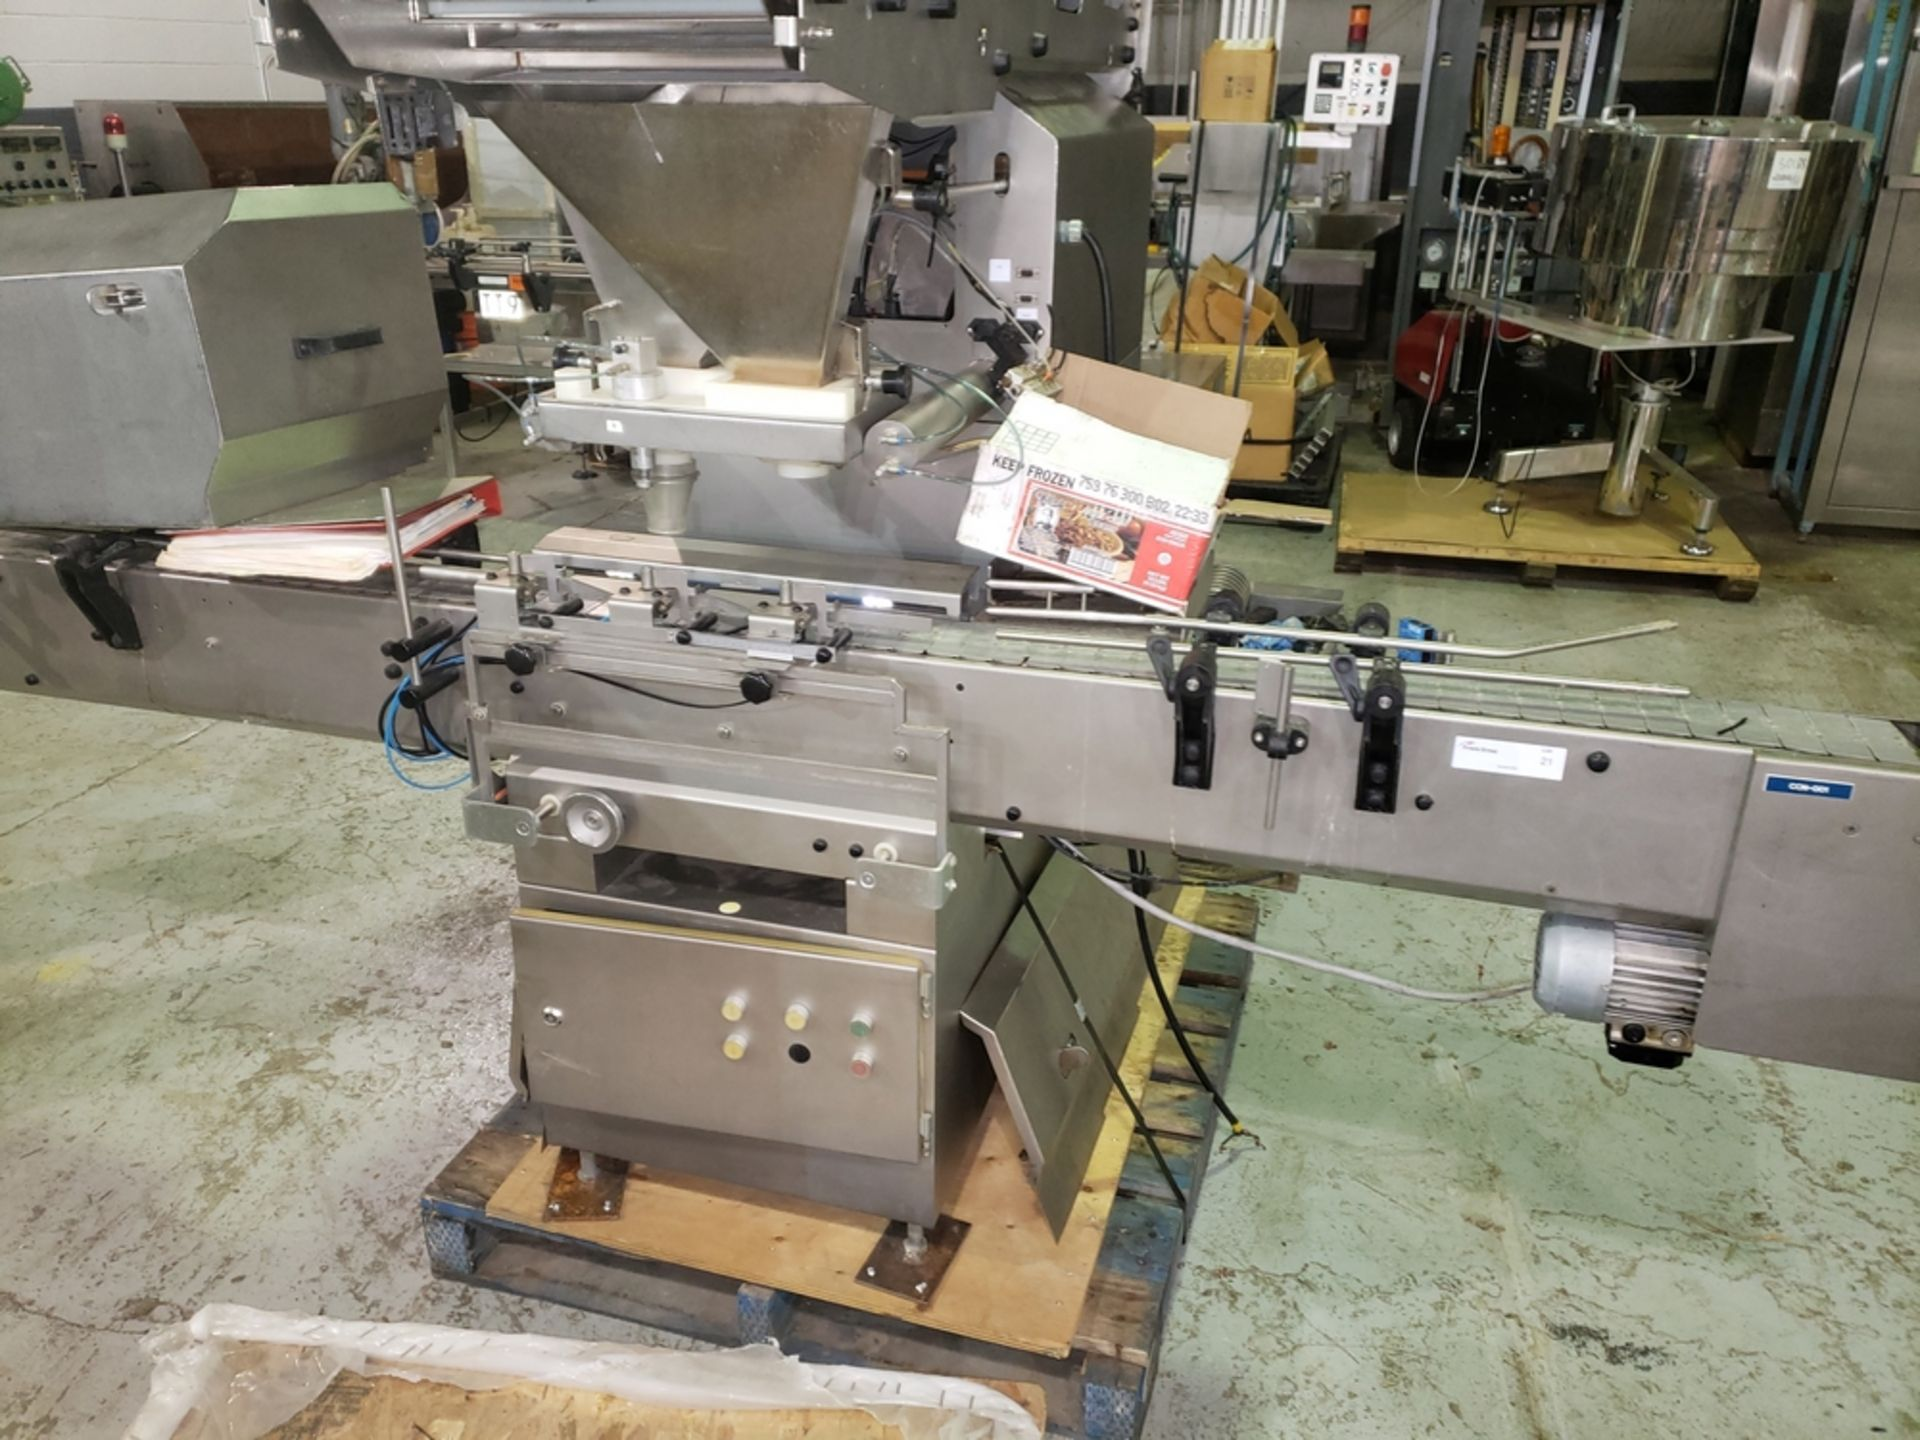 Lot 21 - Cremer tablet counter, model CF-1230, stainless steel Contacts **See Auctioneers Note**